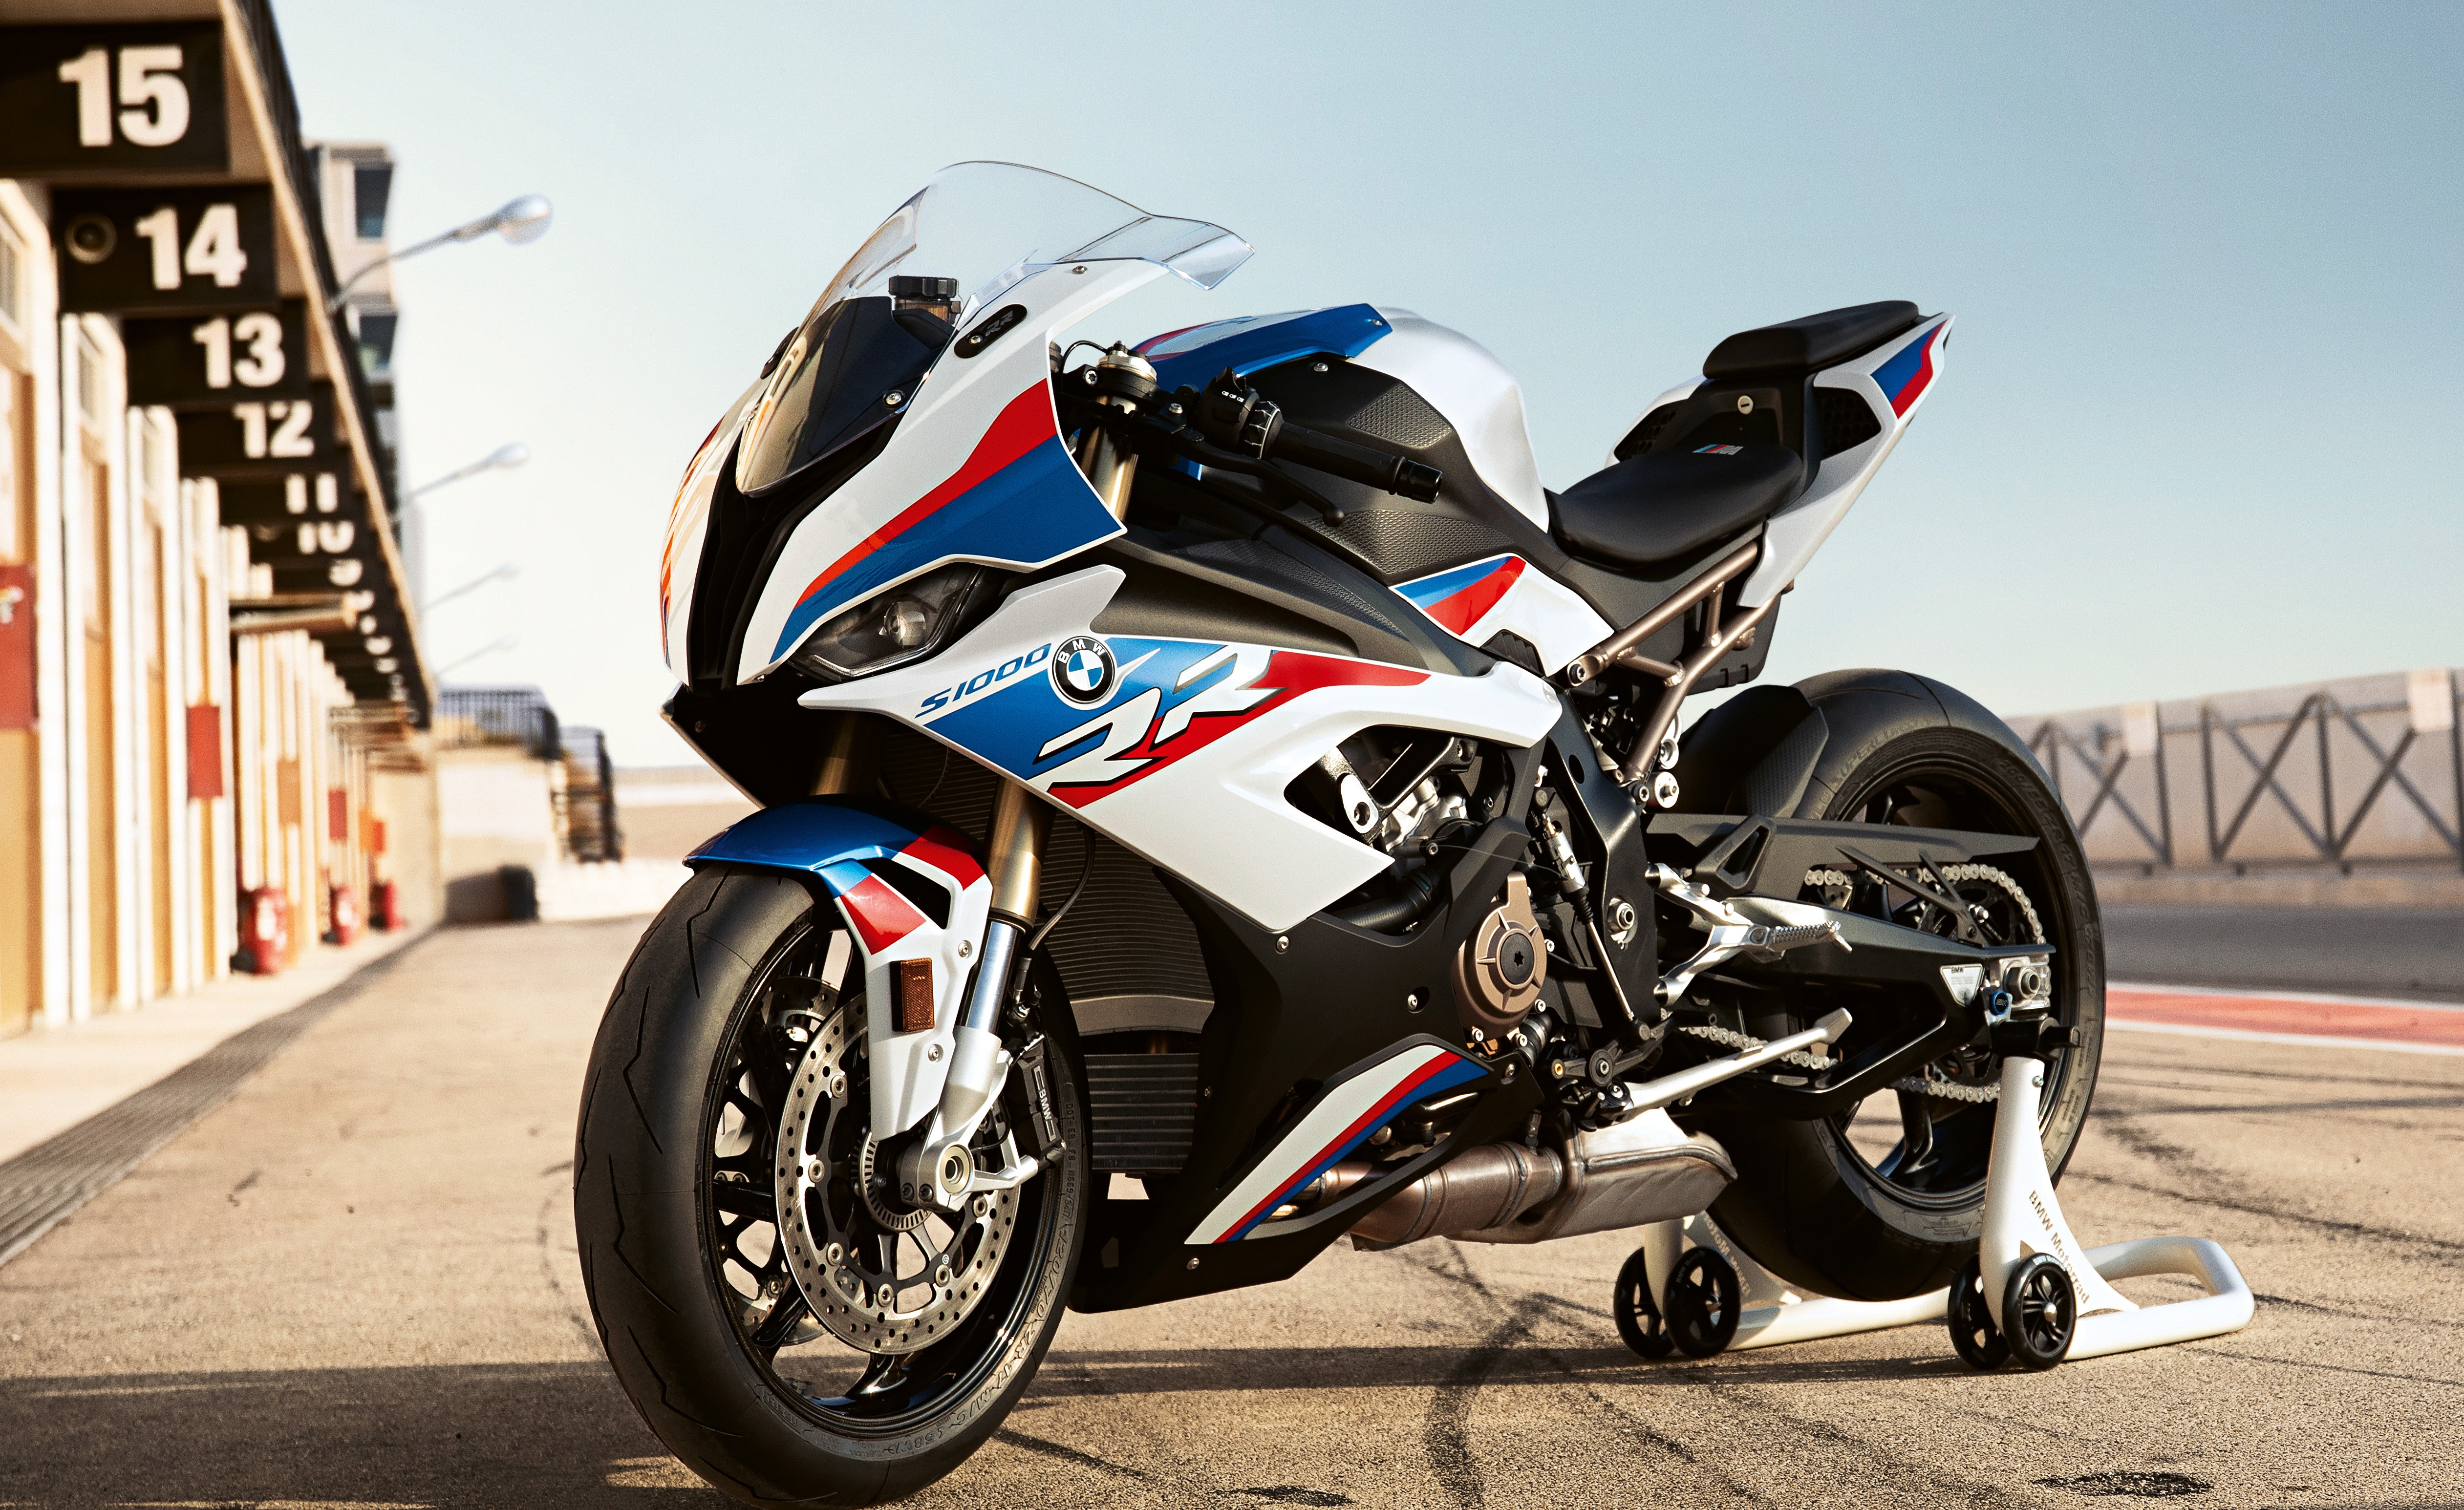 Bmw S1000rr 4k Wallpaper M Package 2020 Race Bikes 5k Bikes 2751